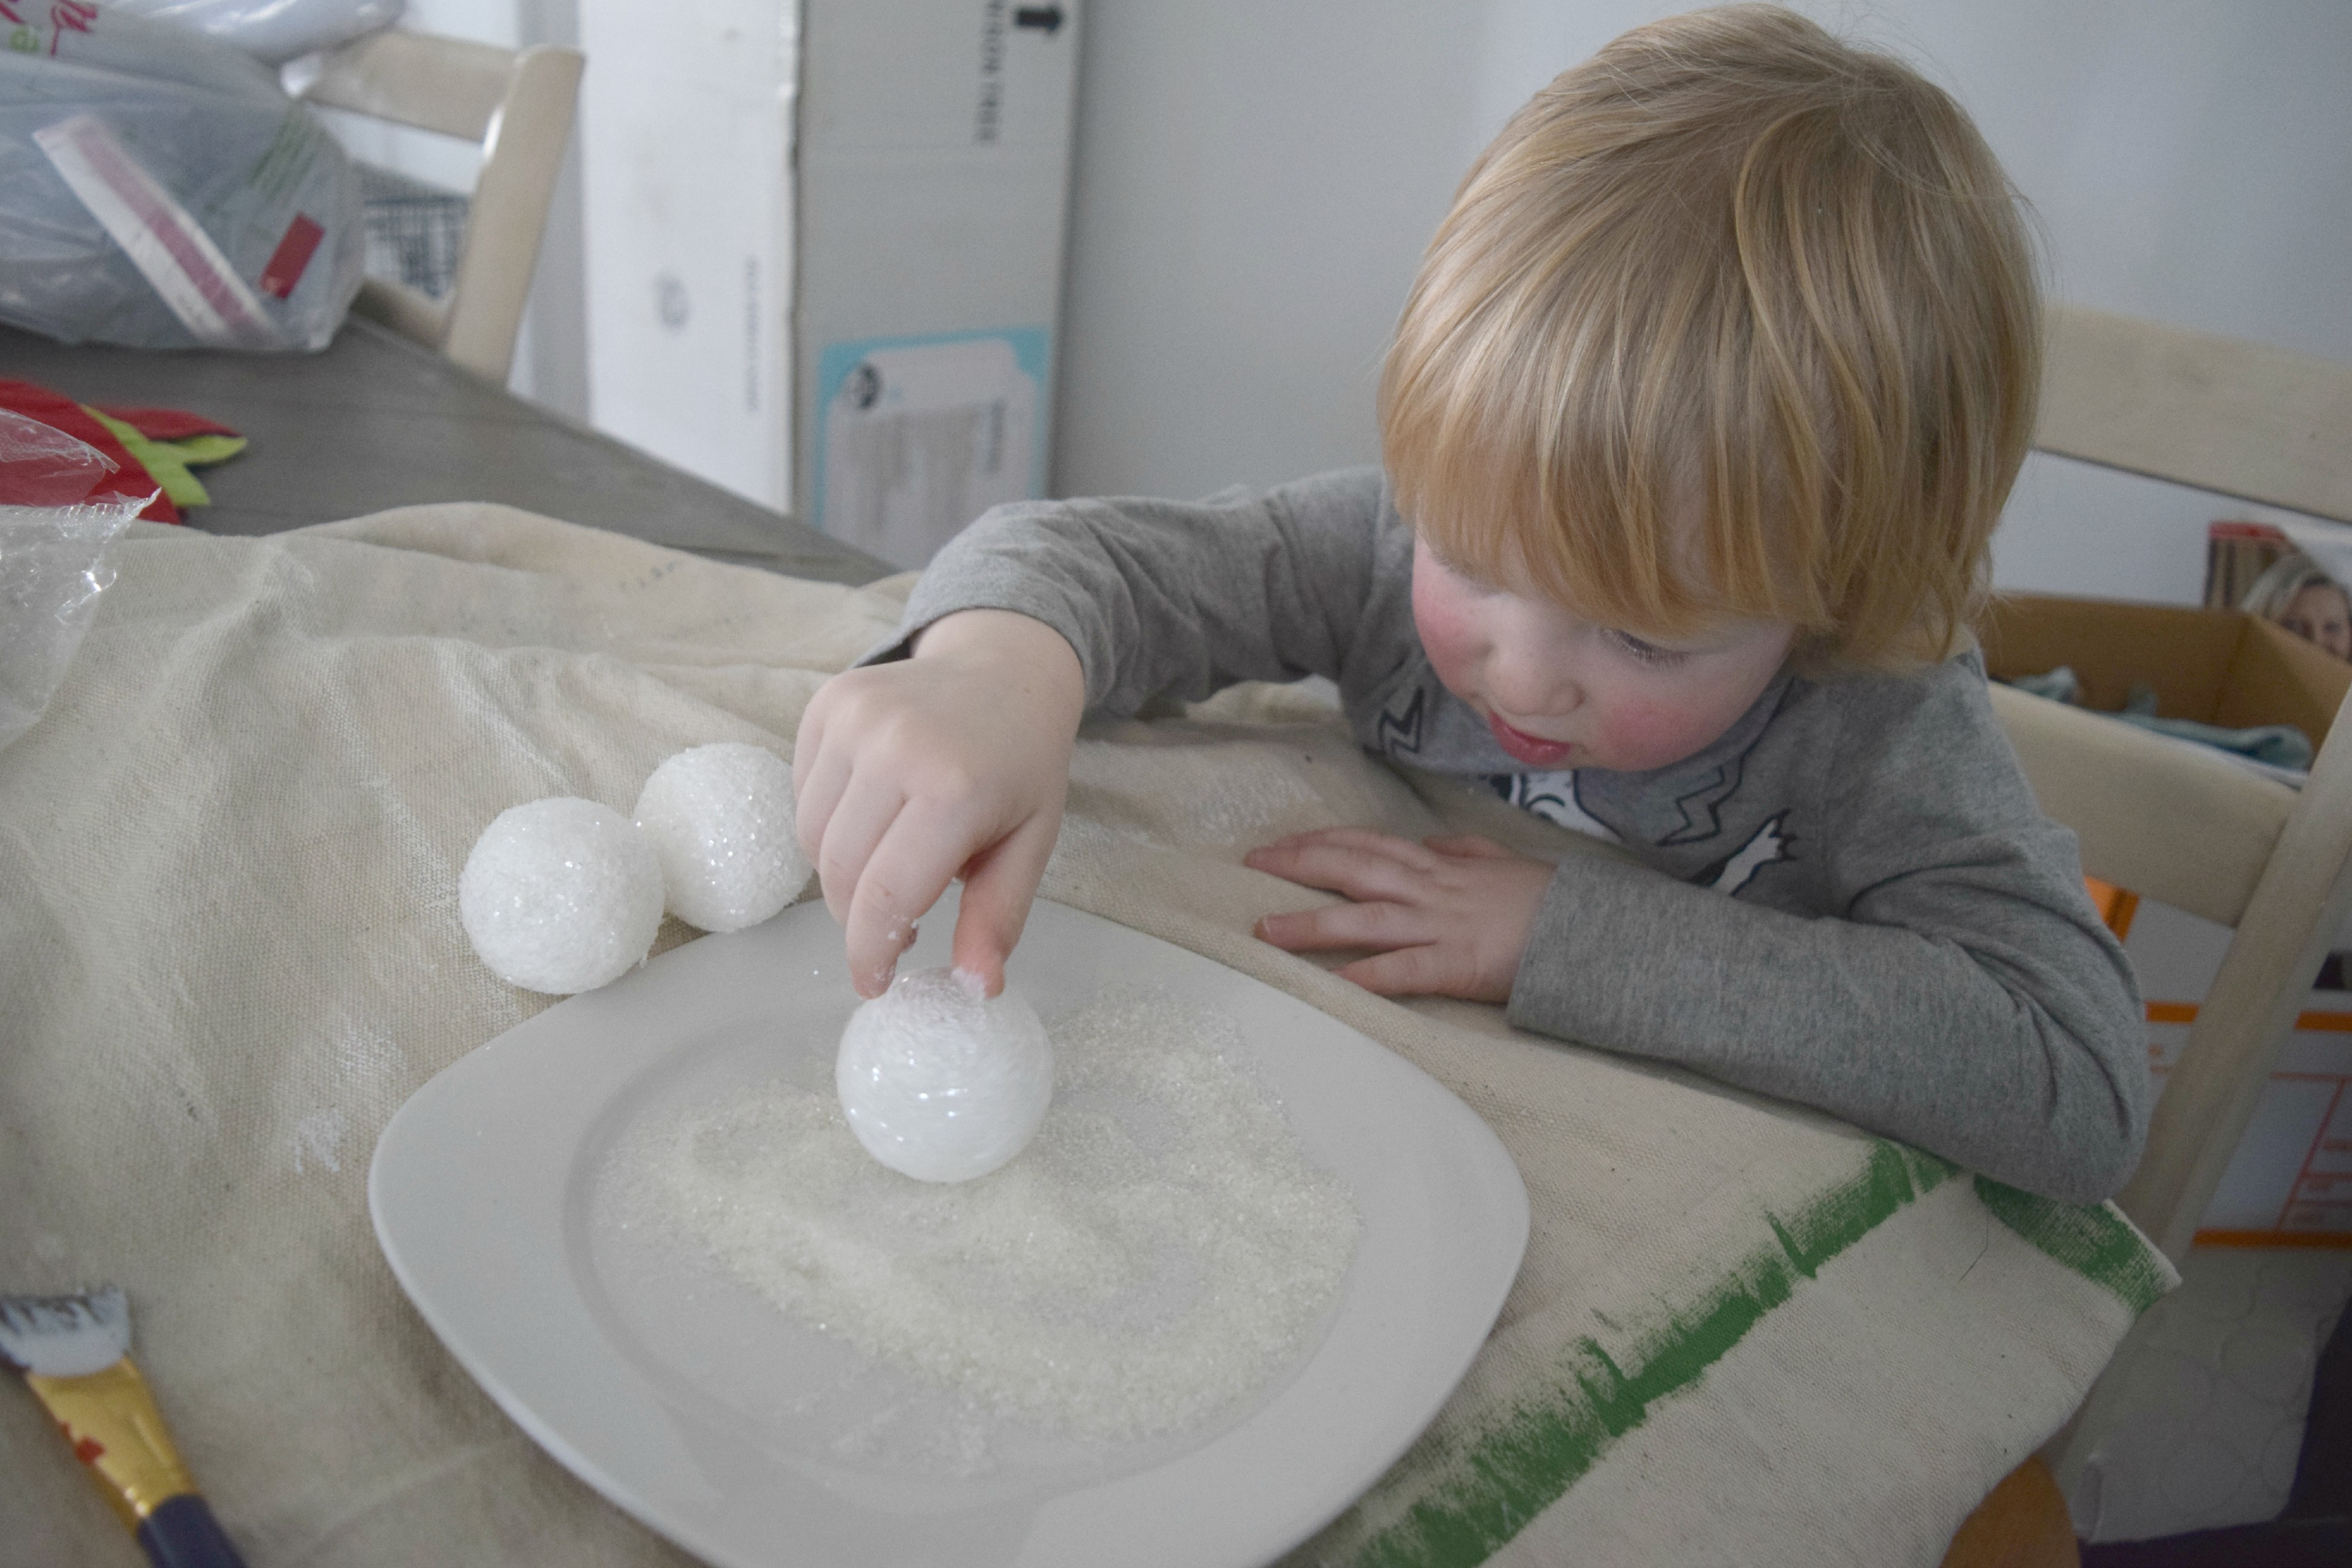 gaving making craft snowballs